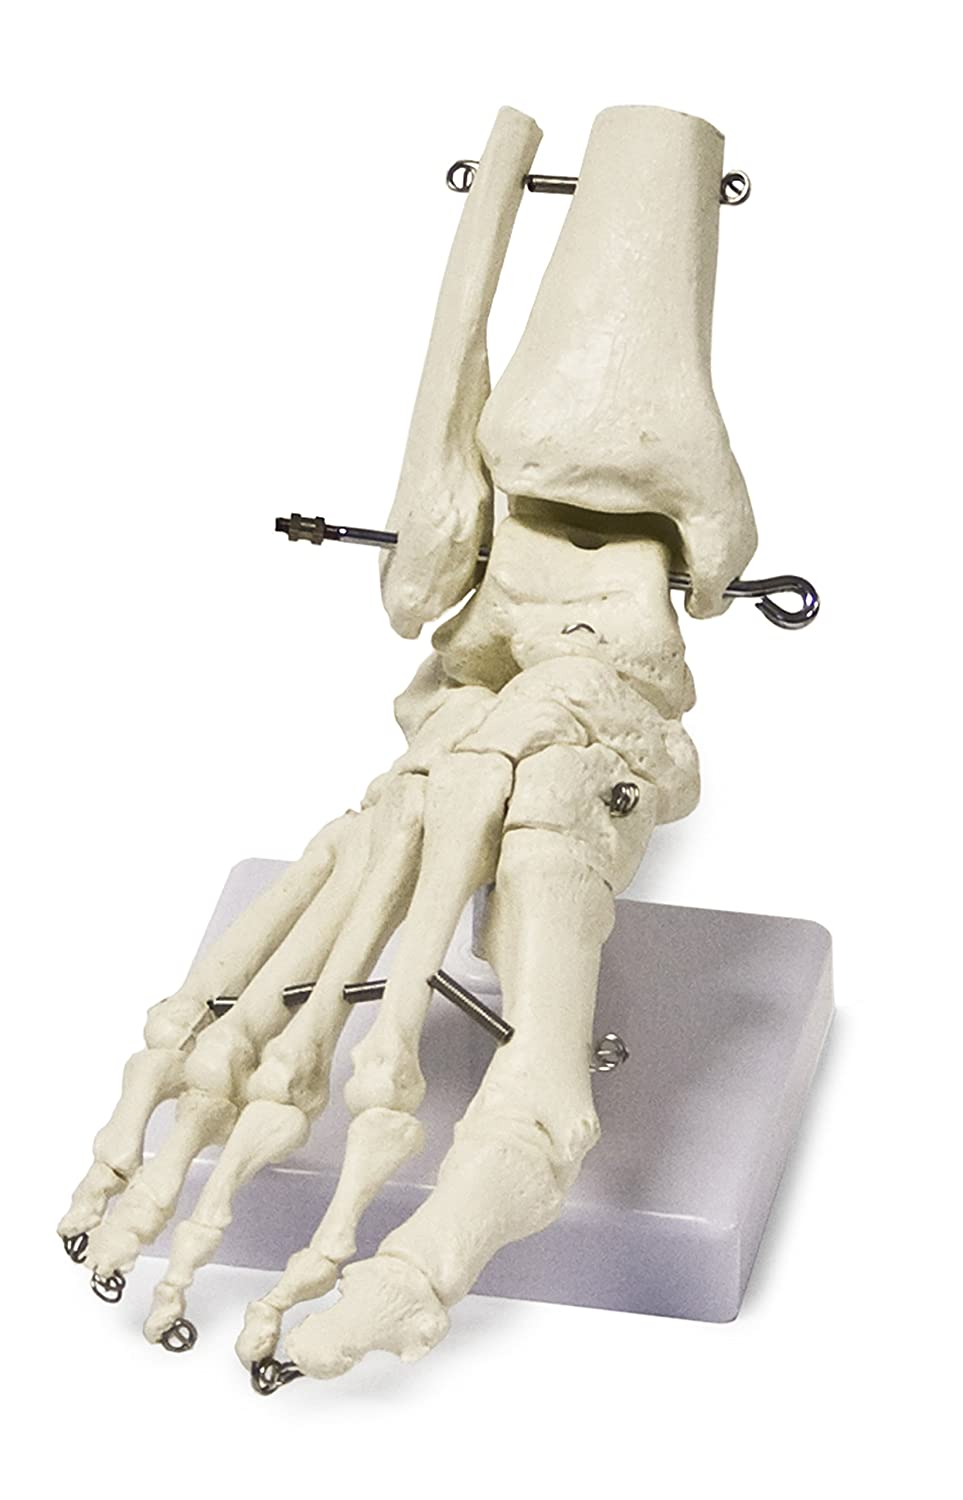 Vision Scientific VAJ211 Foot Skeleton Model Right | Shows Distal Portions of the Tibia and Fibula | Fully Articulated | Connected With Flexible Wire to Demonstrate Natural Movement